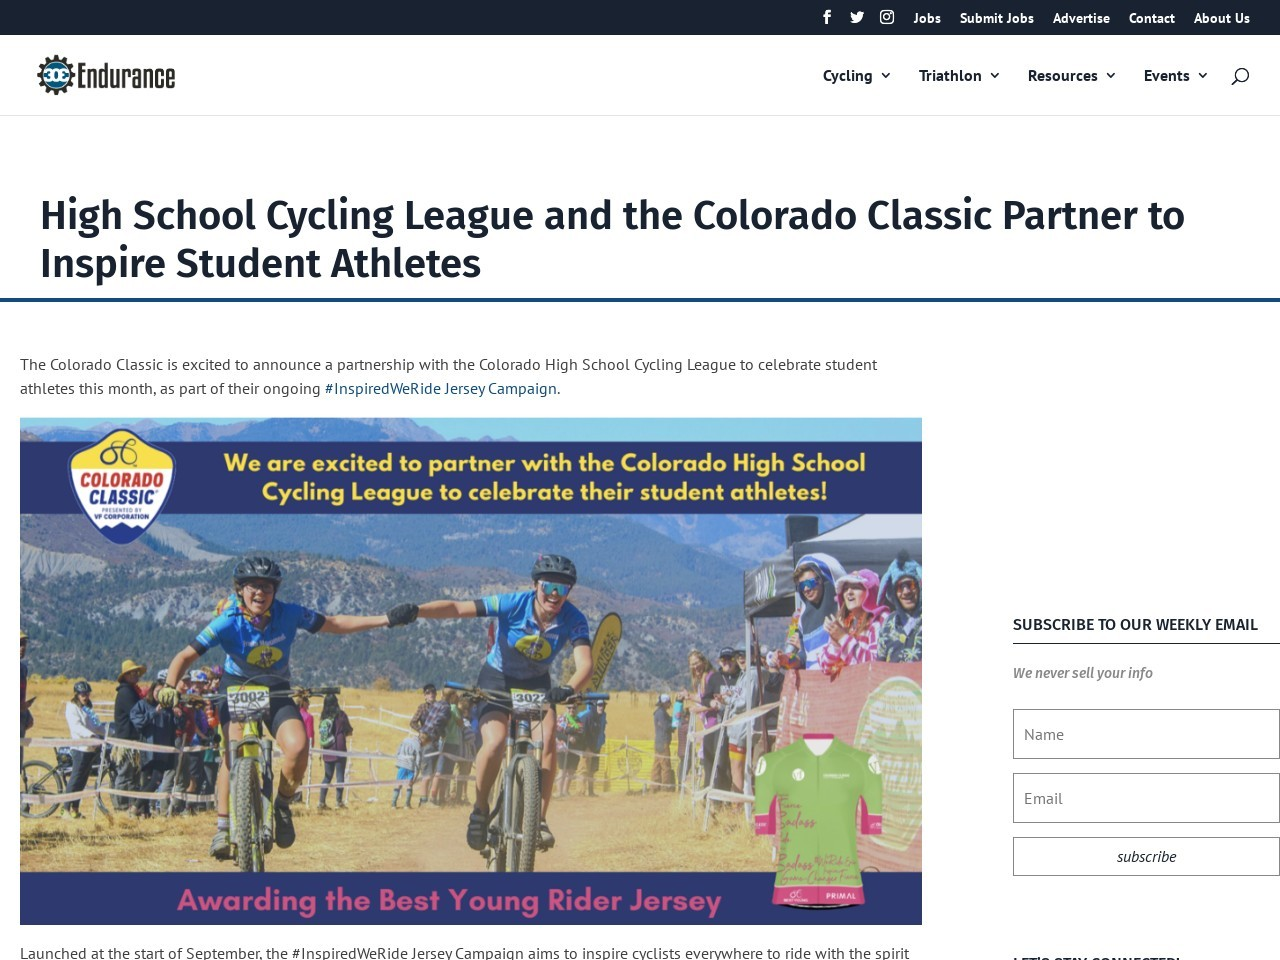 High School Cycling League and the Colorado Classic Partner to Inspire Student Athletes